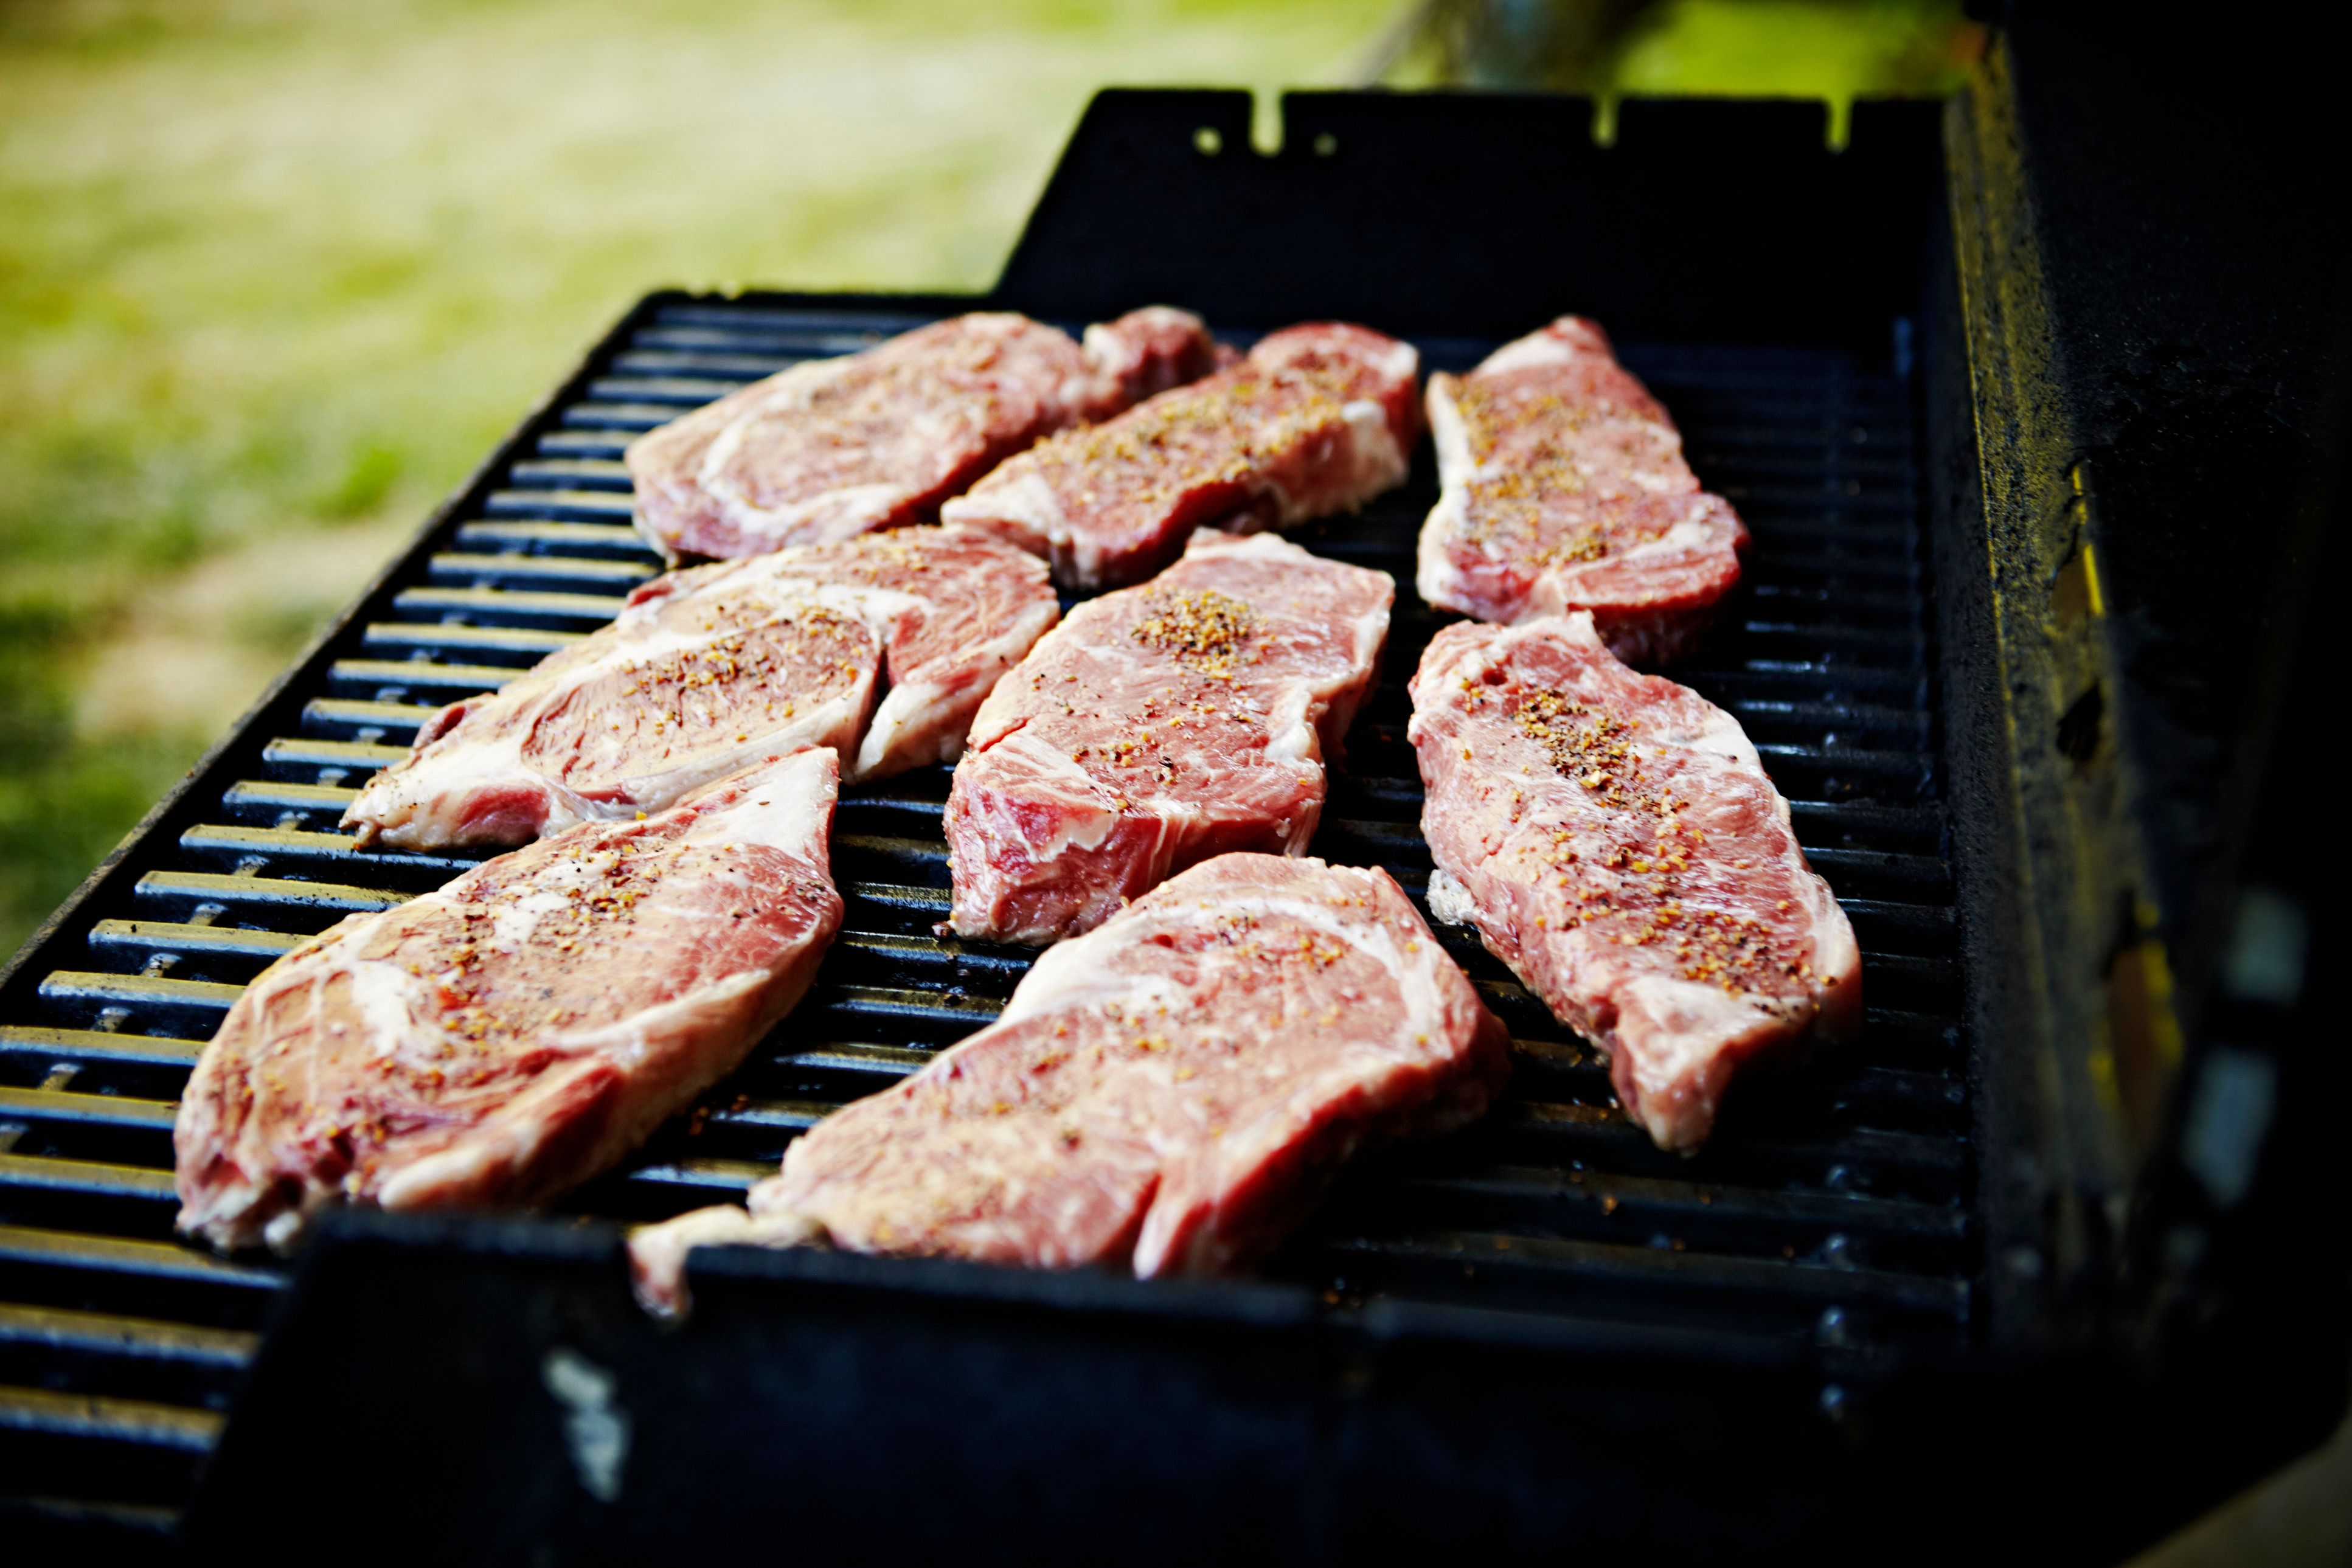 The Steak Cuts You Should (And Shouldn't) Be